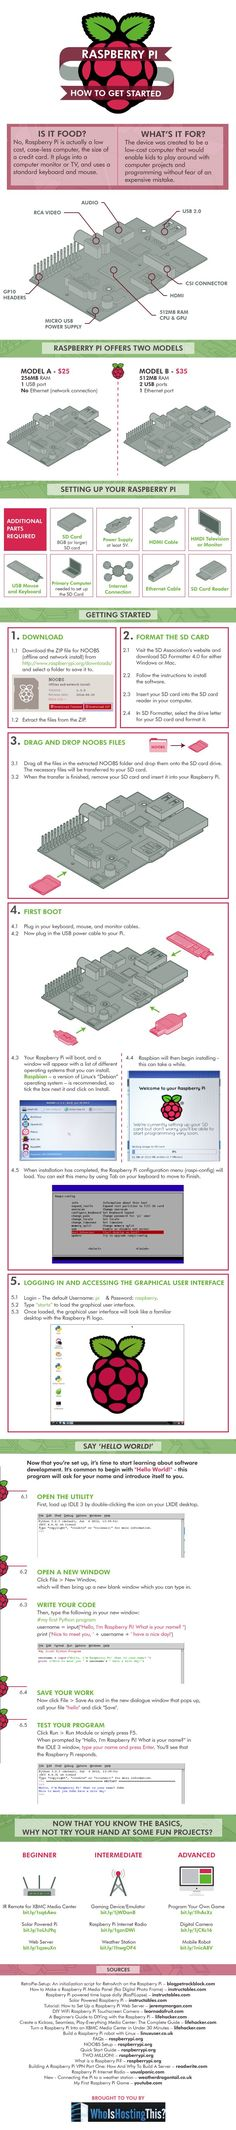 Raspberry Pi, a low cost, case-less computer the size of a credit card. You need to know this.